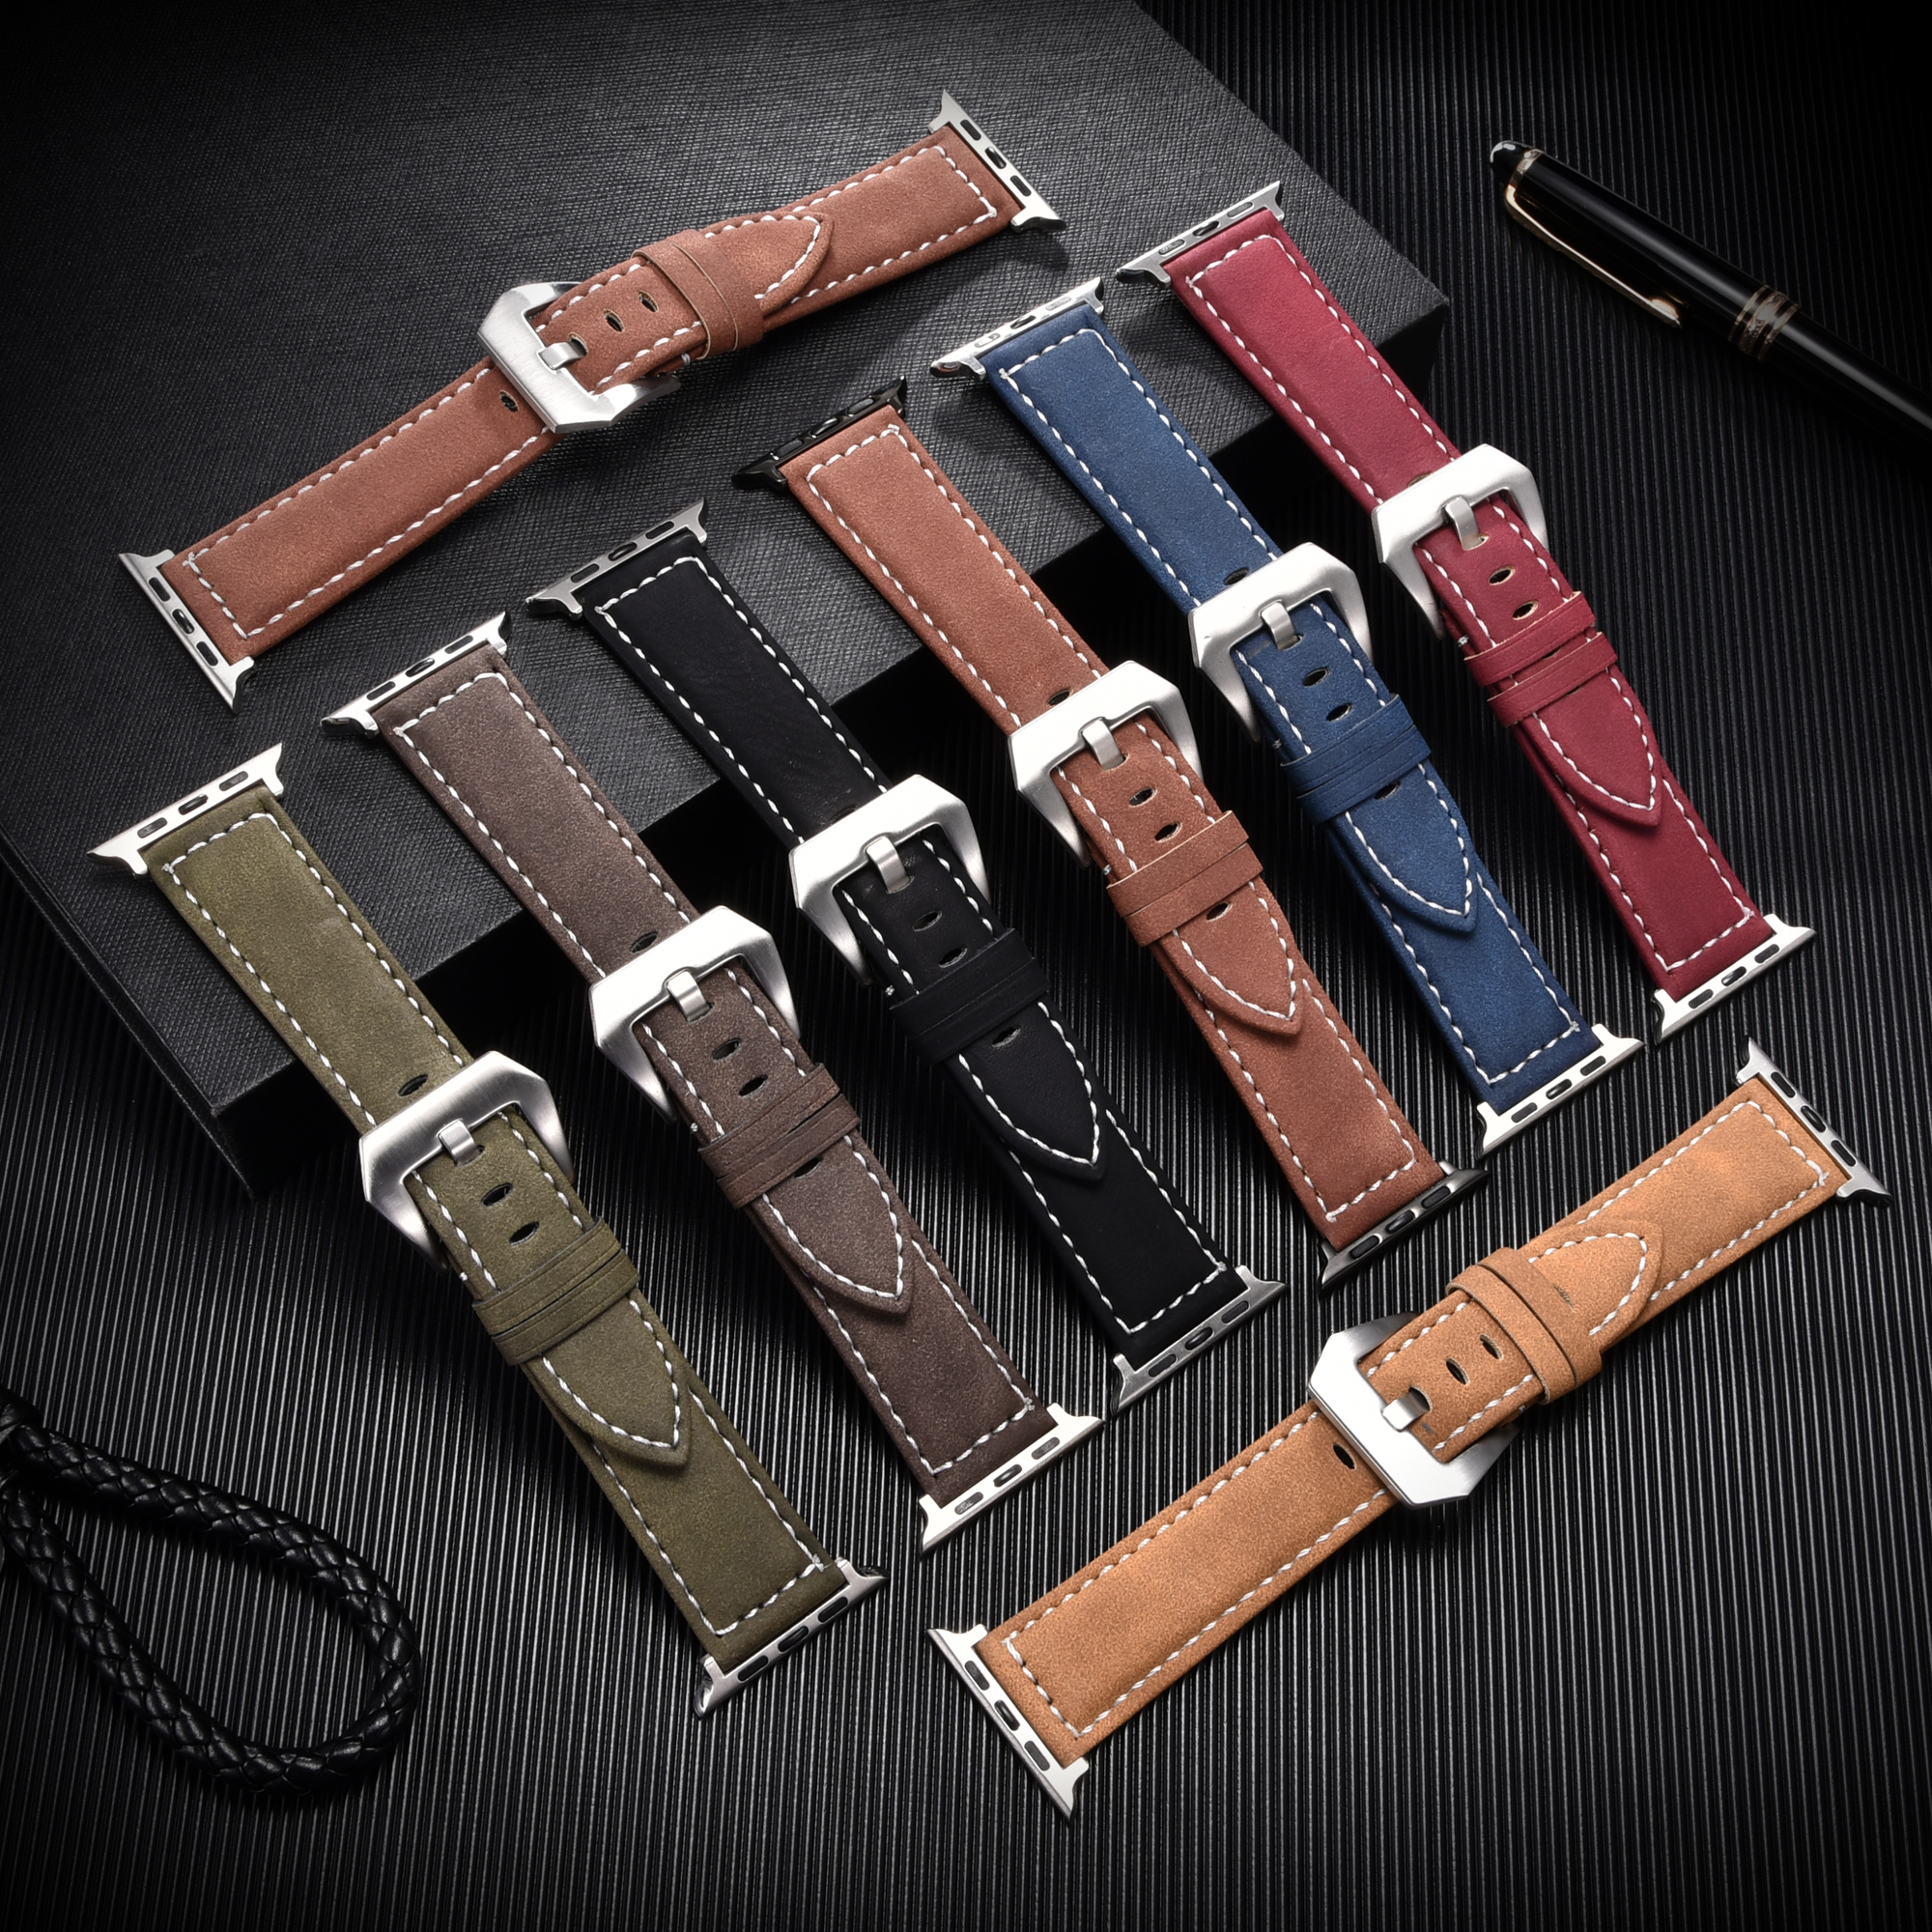 Vintage Leather Watch Strap for Apple Watch Accessories 40mm 44mm Series SE 6 5 4 3 Watchband 38mm 42mm for iwatch Straps